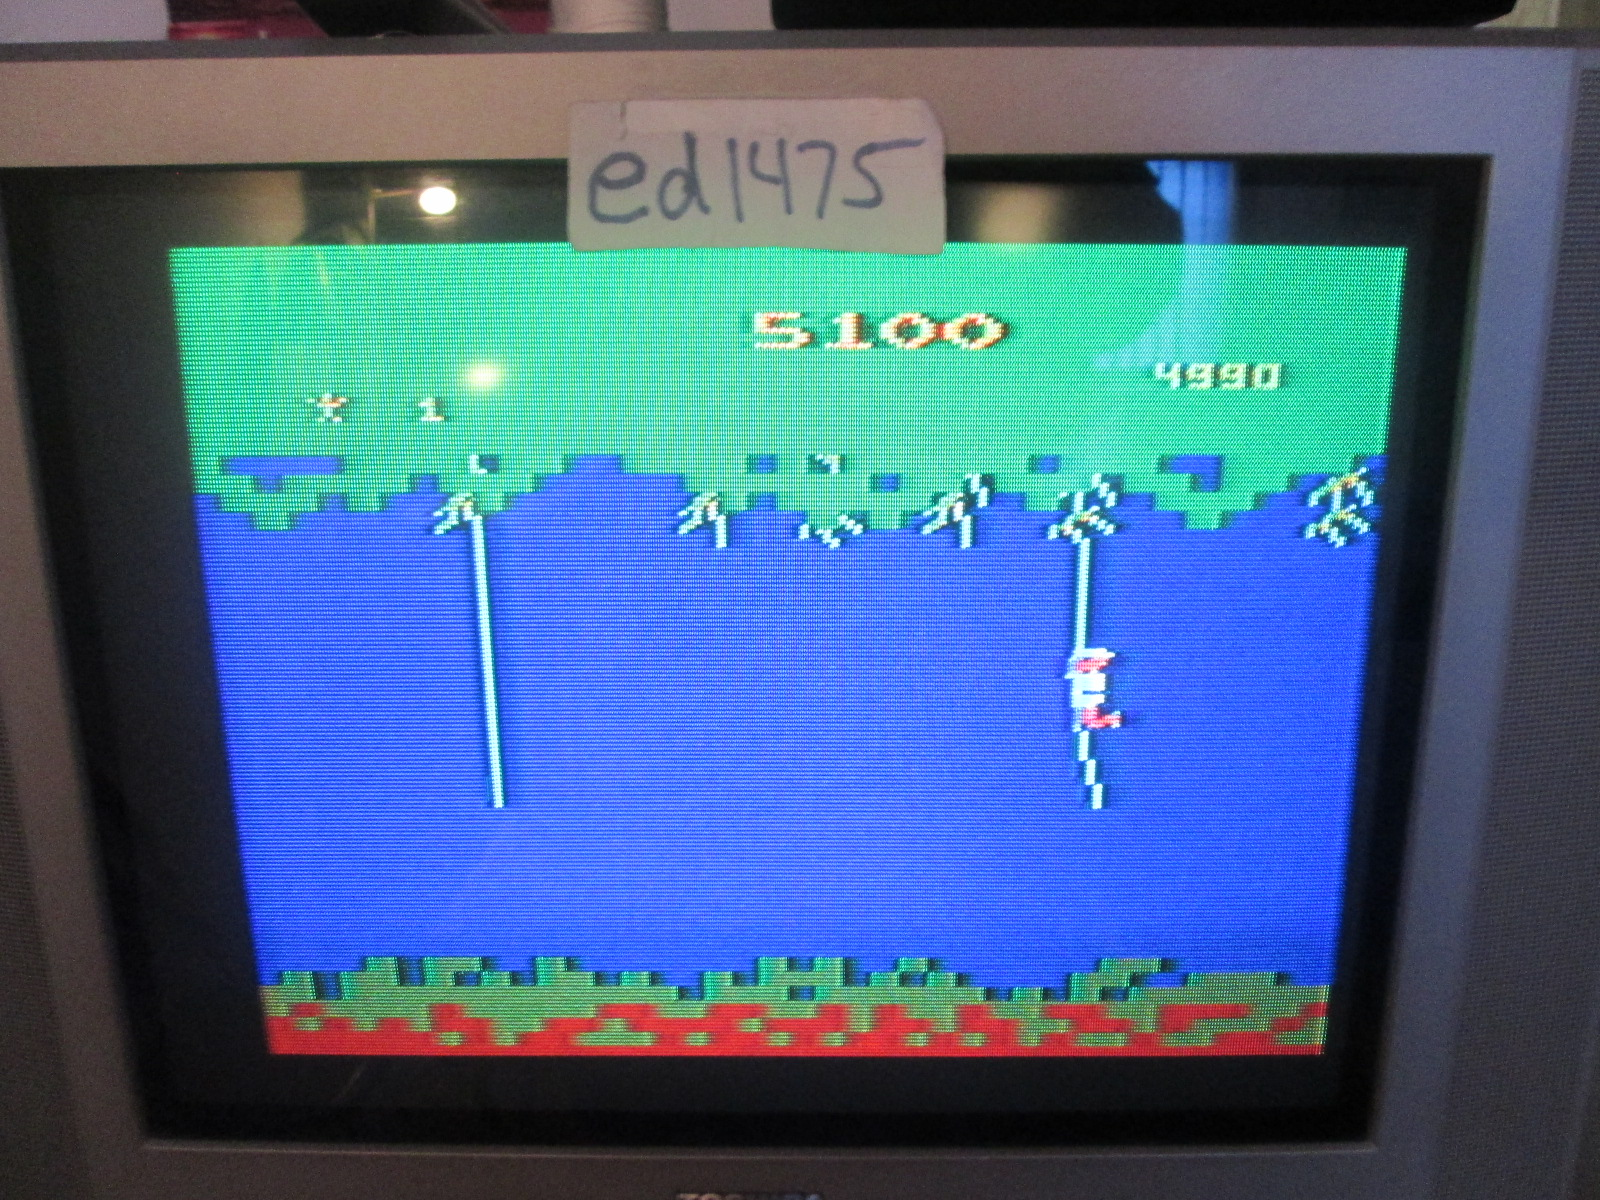 ed1475: Jungle Hunt (Atari 2600) 5,100 points on 2016-09-29 17:49:14